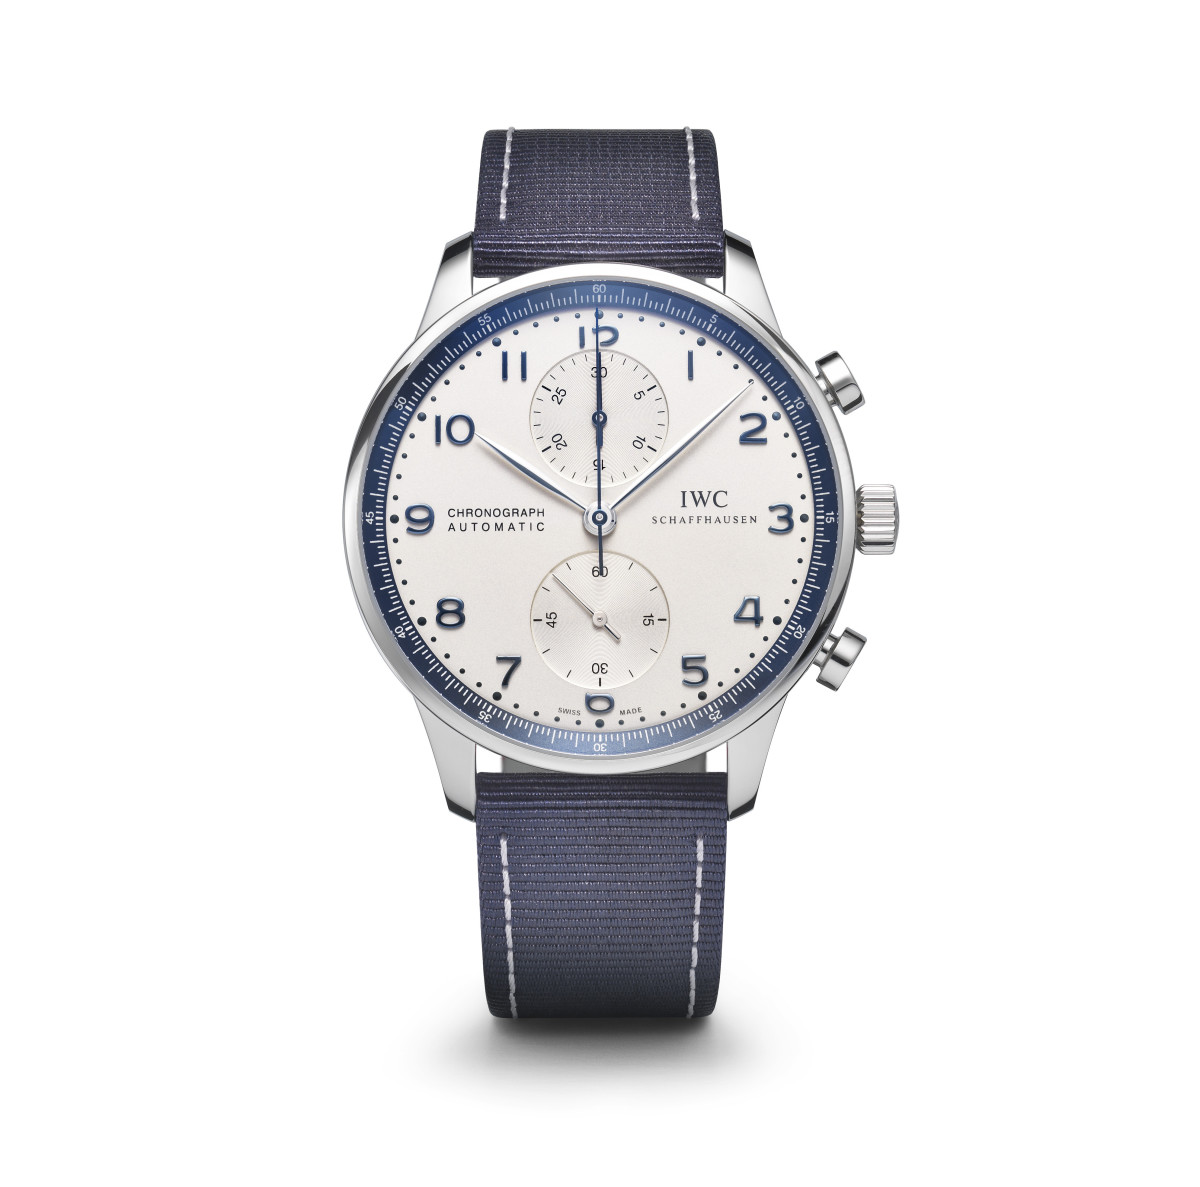 Bucherer and IWC Portugieser Chronograph